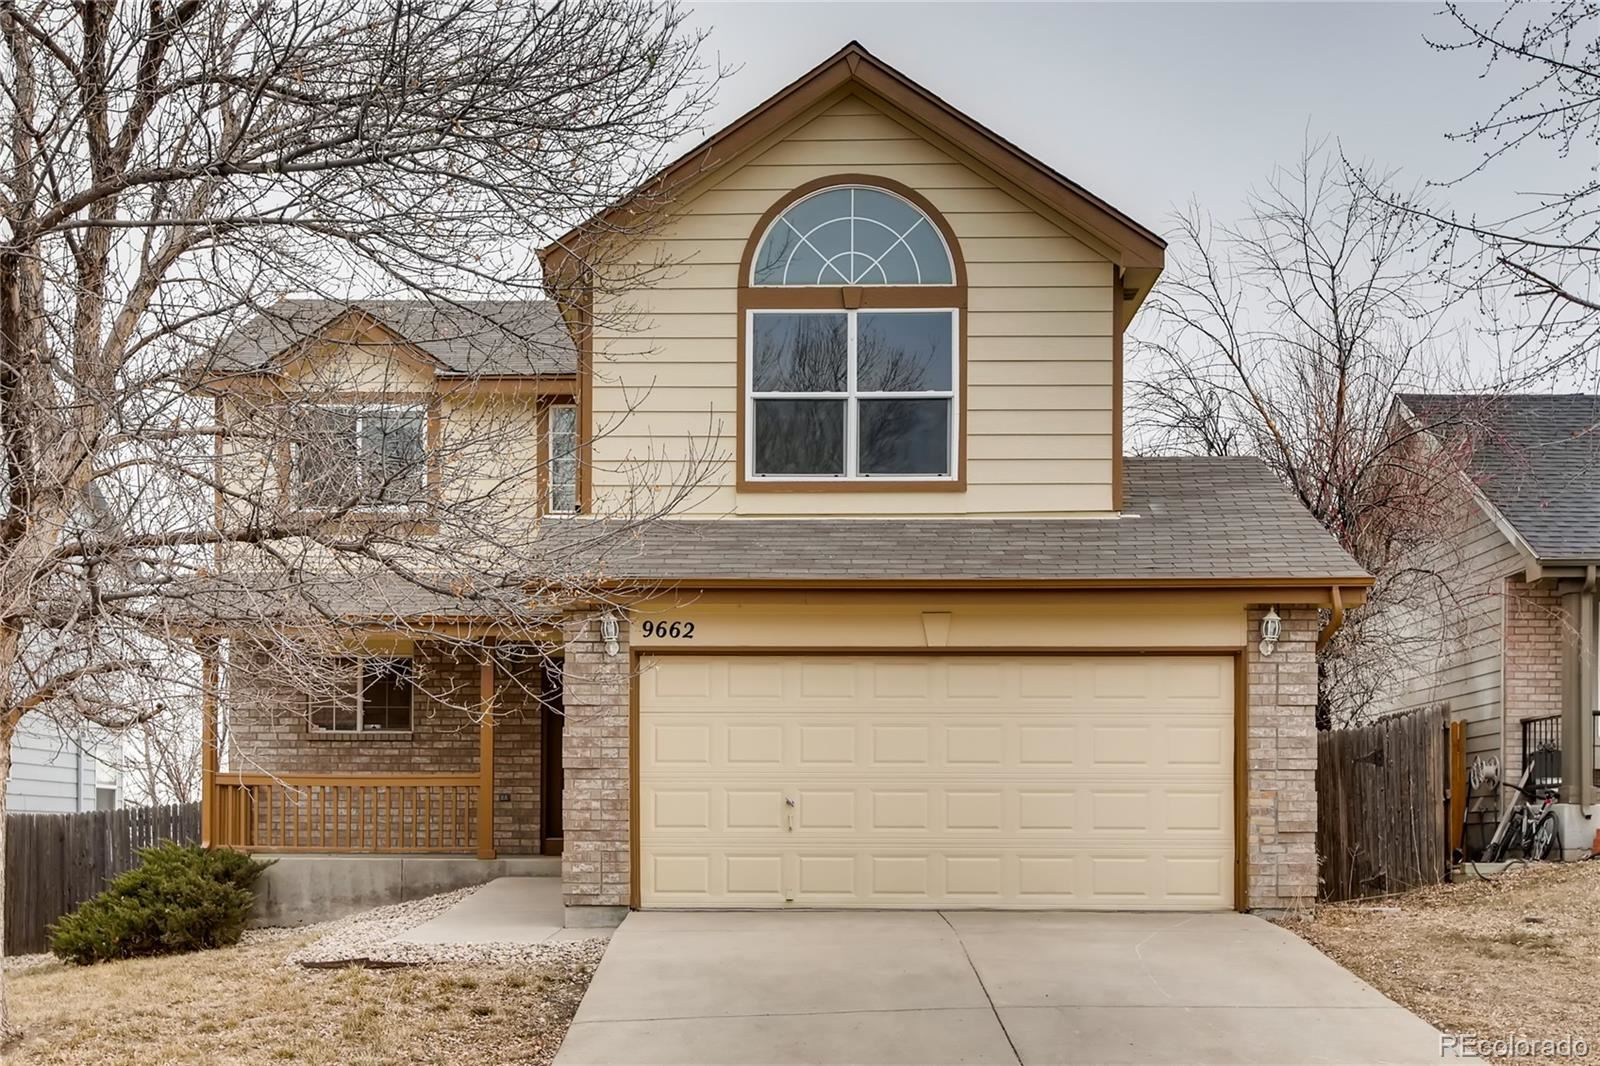 9662 Marion Way, Thornton, CO 80229 - #: 3933507